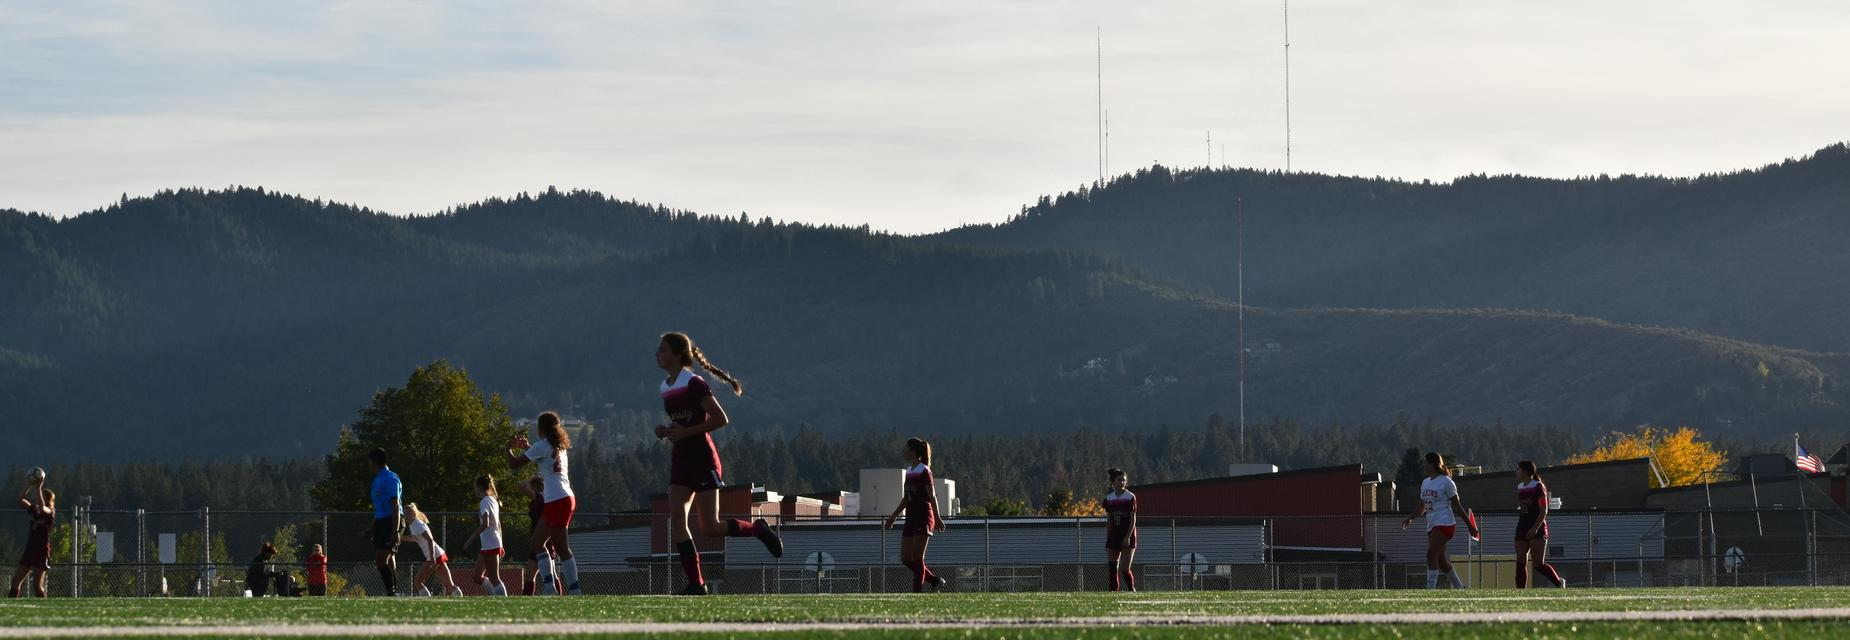 Soccer field with ridgeline in the background